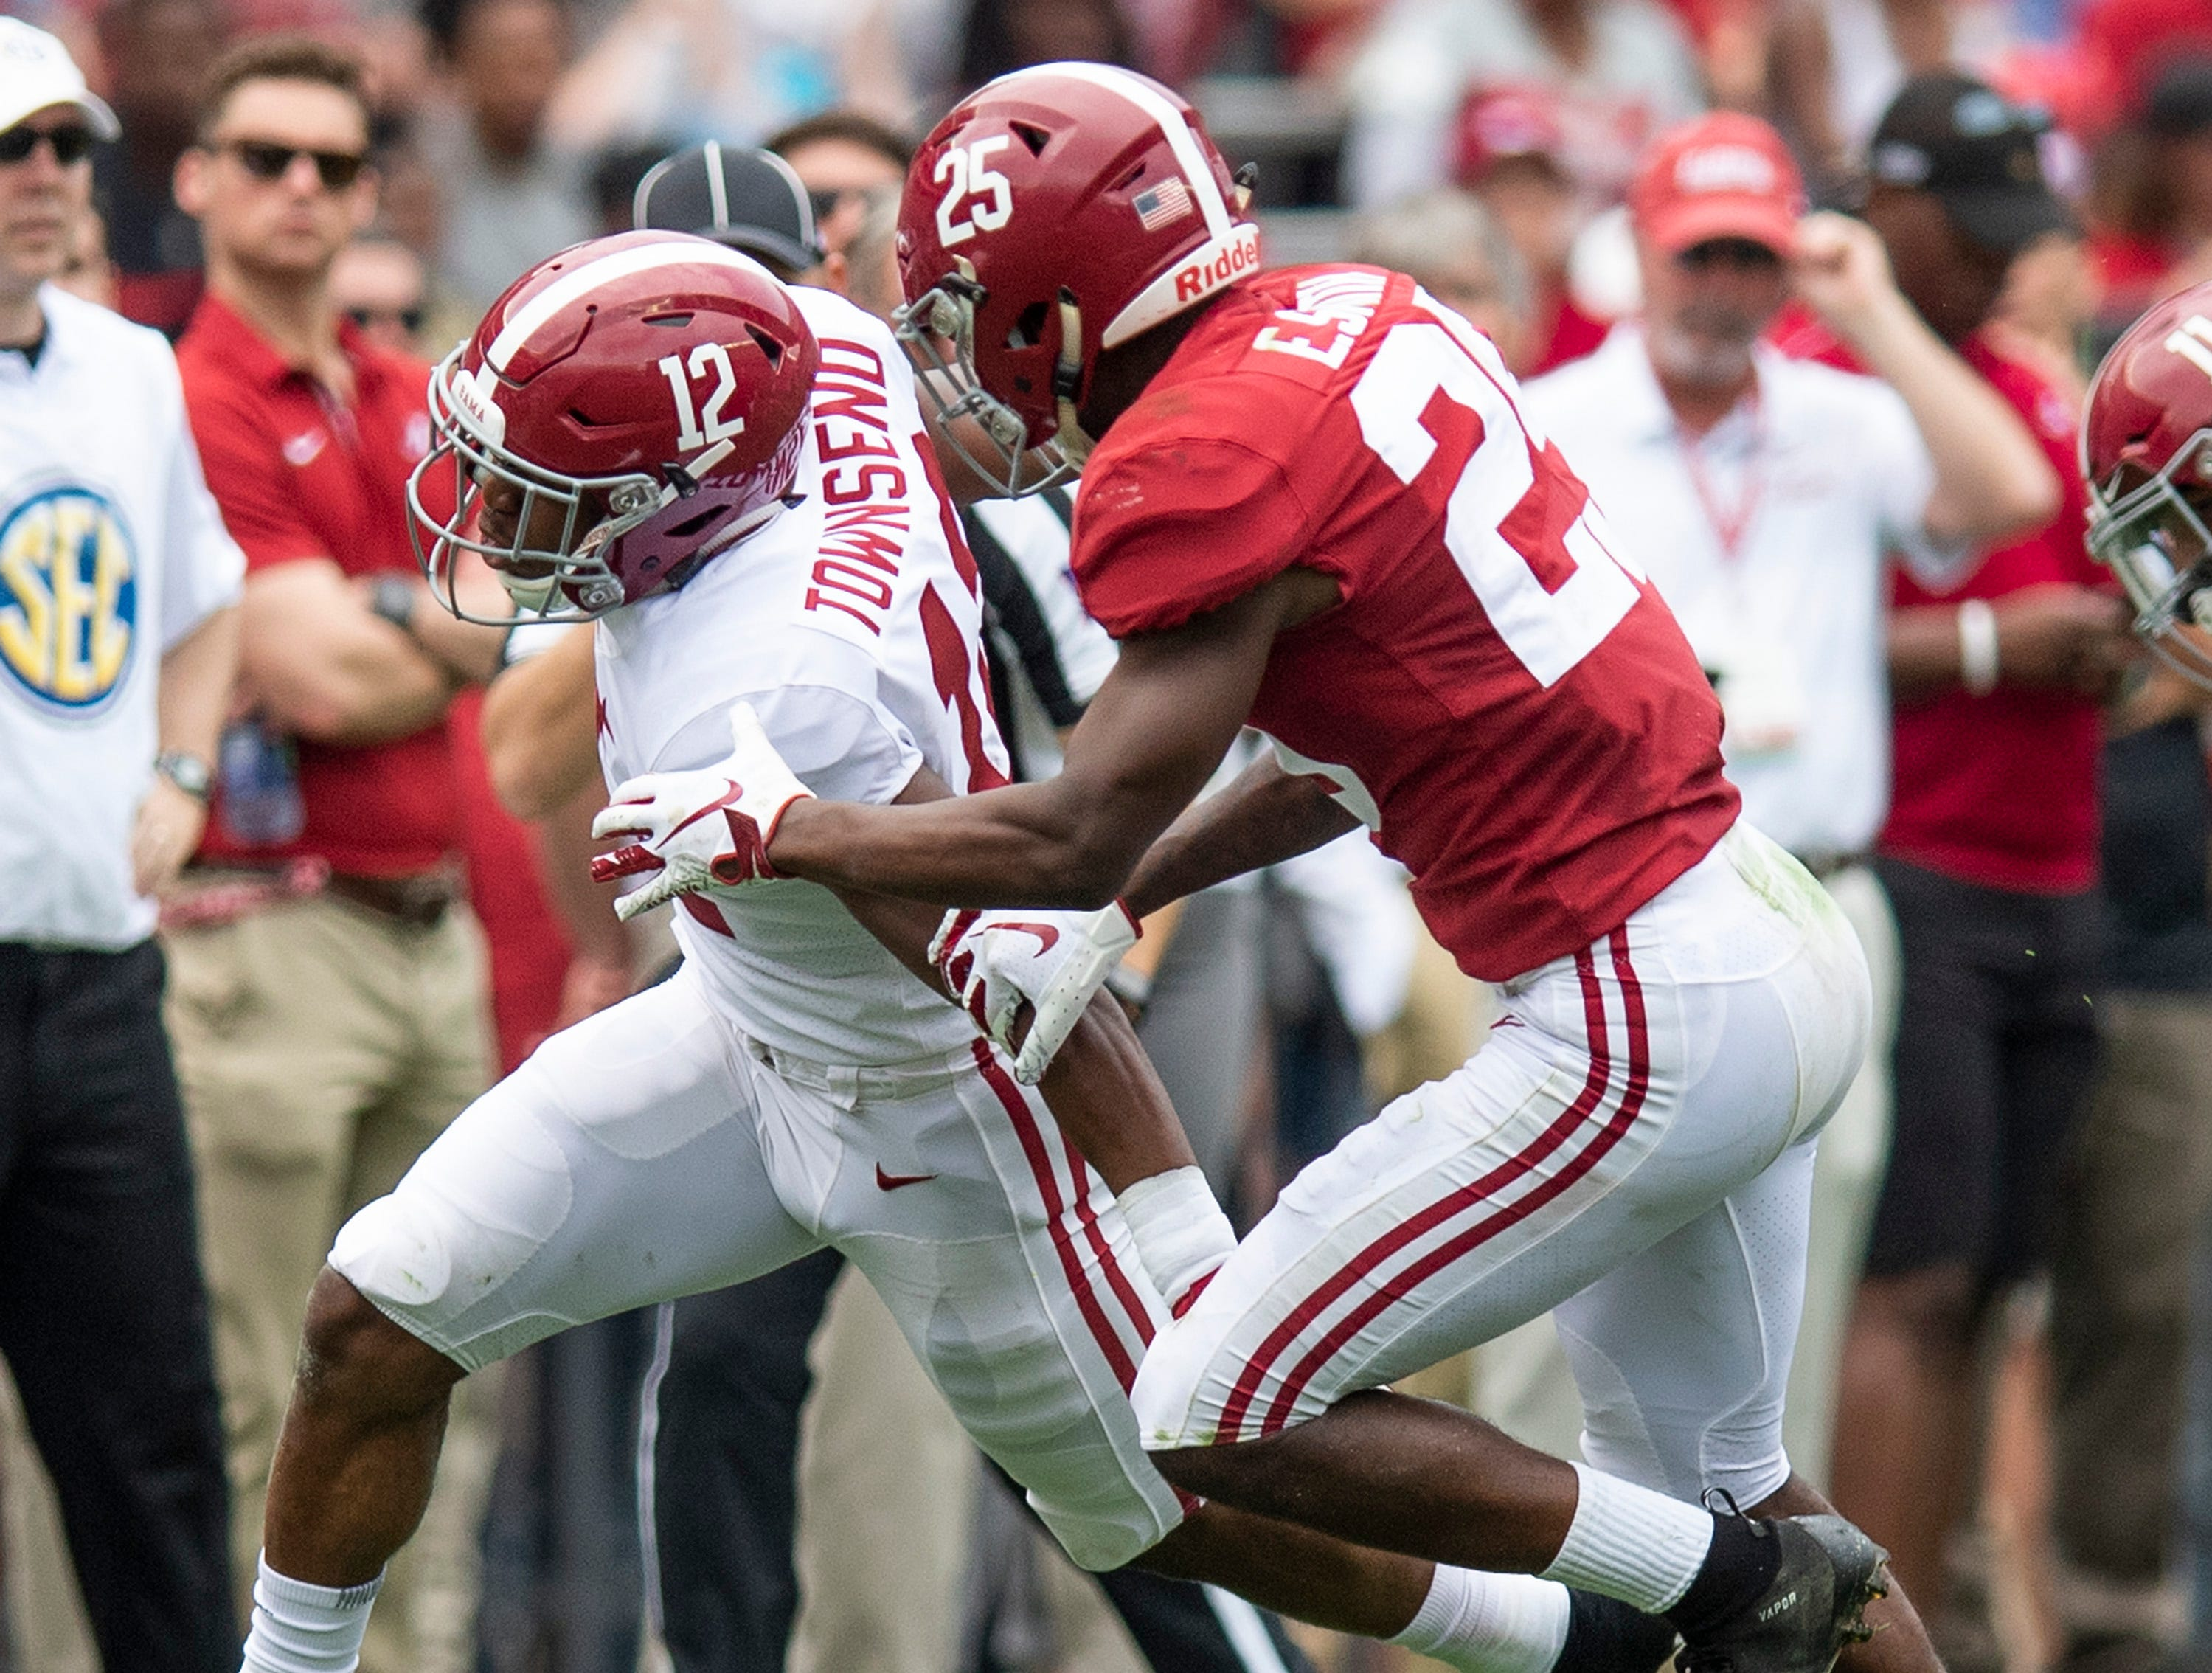 Defensive back Eddie Smith (25) stops wide receiver Chadarius Townsend (12) during second half action in the Alabama A-Day spring football scrimmage game at Bryant Denny Stadium in Tuscaloosa, Ala., on Saturday April 13, 2019.